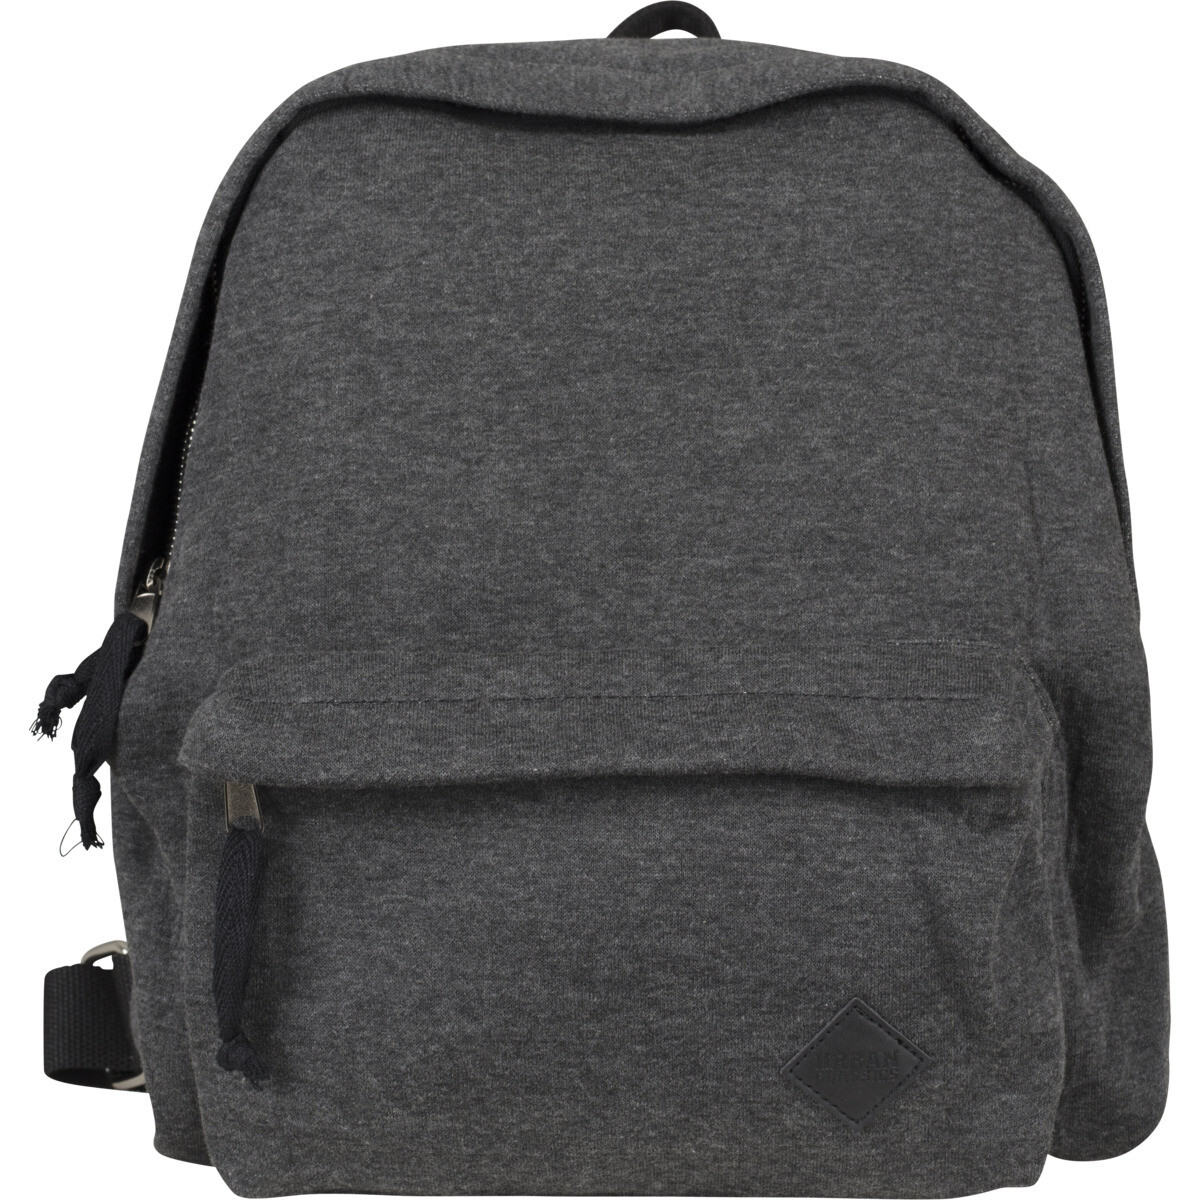 Sweat Backpack - Charcoal